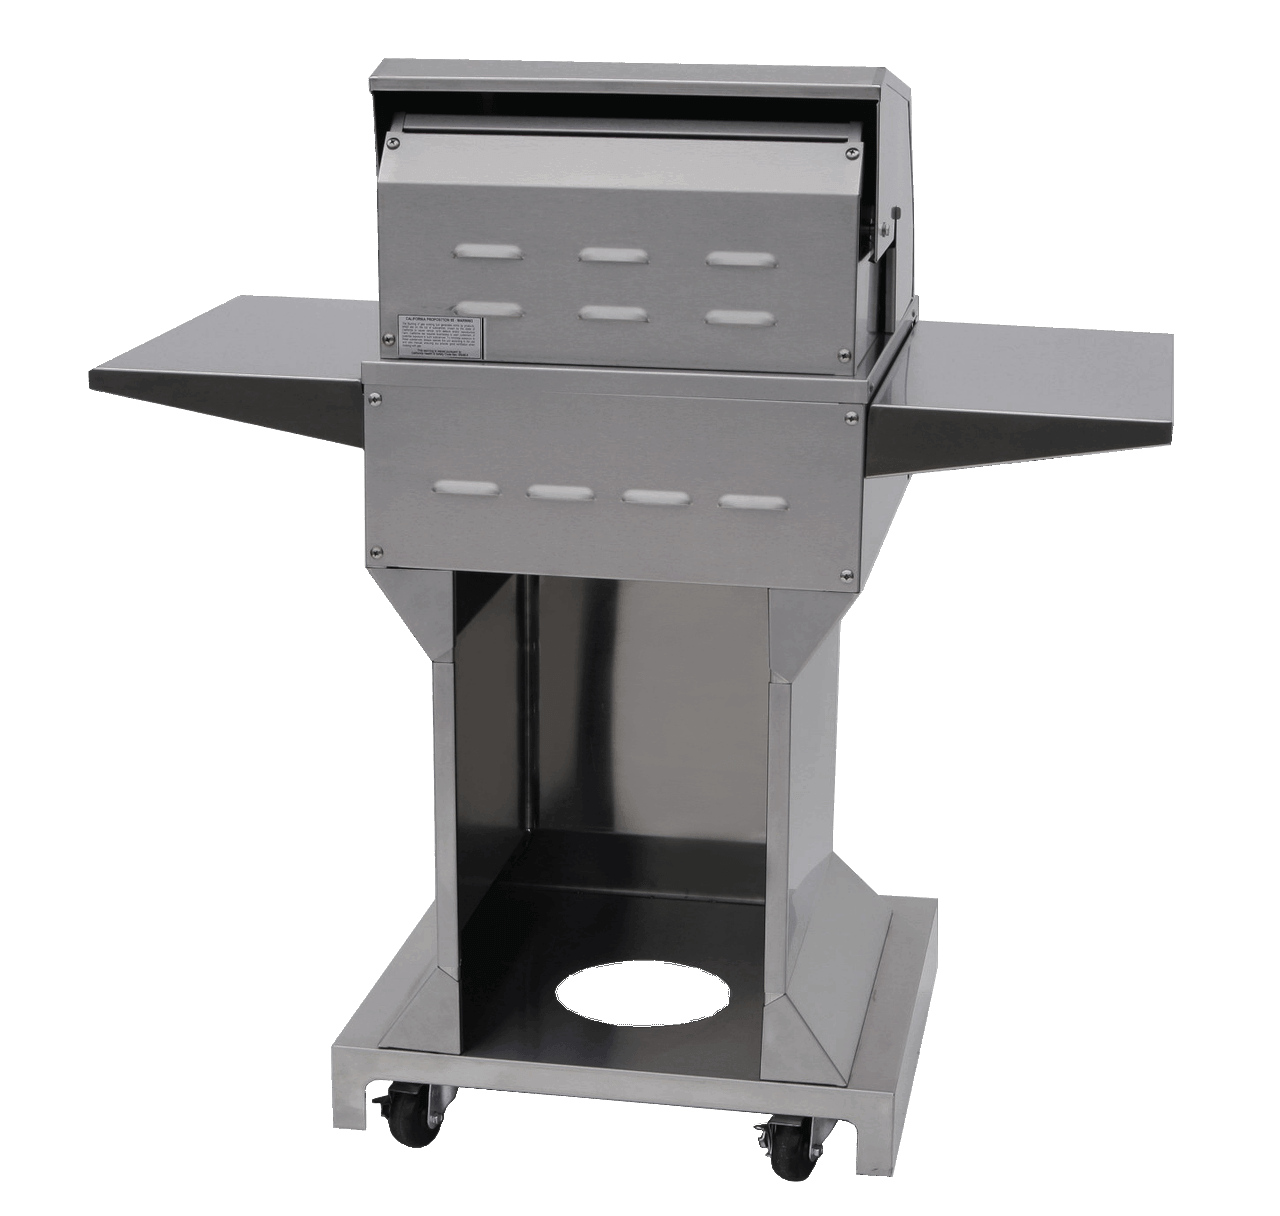 Solaire 21 XL Grill, Angular Pedestal, Back View, Hood Down, Shelves Up